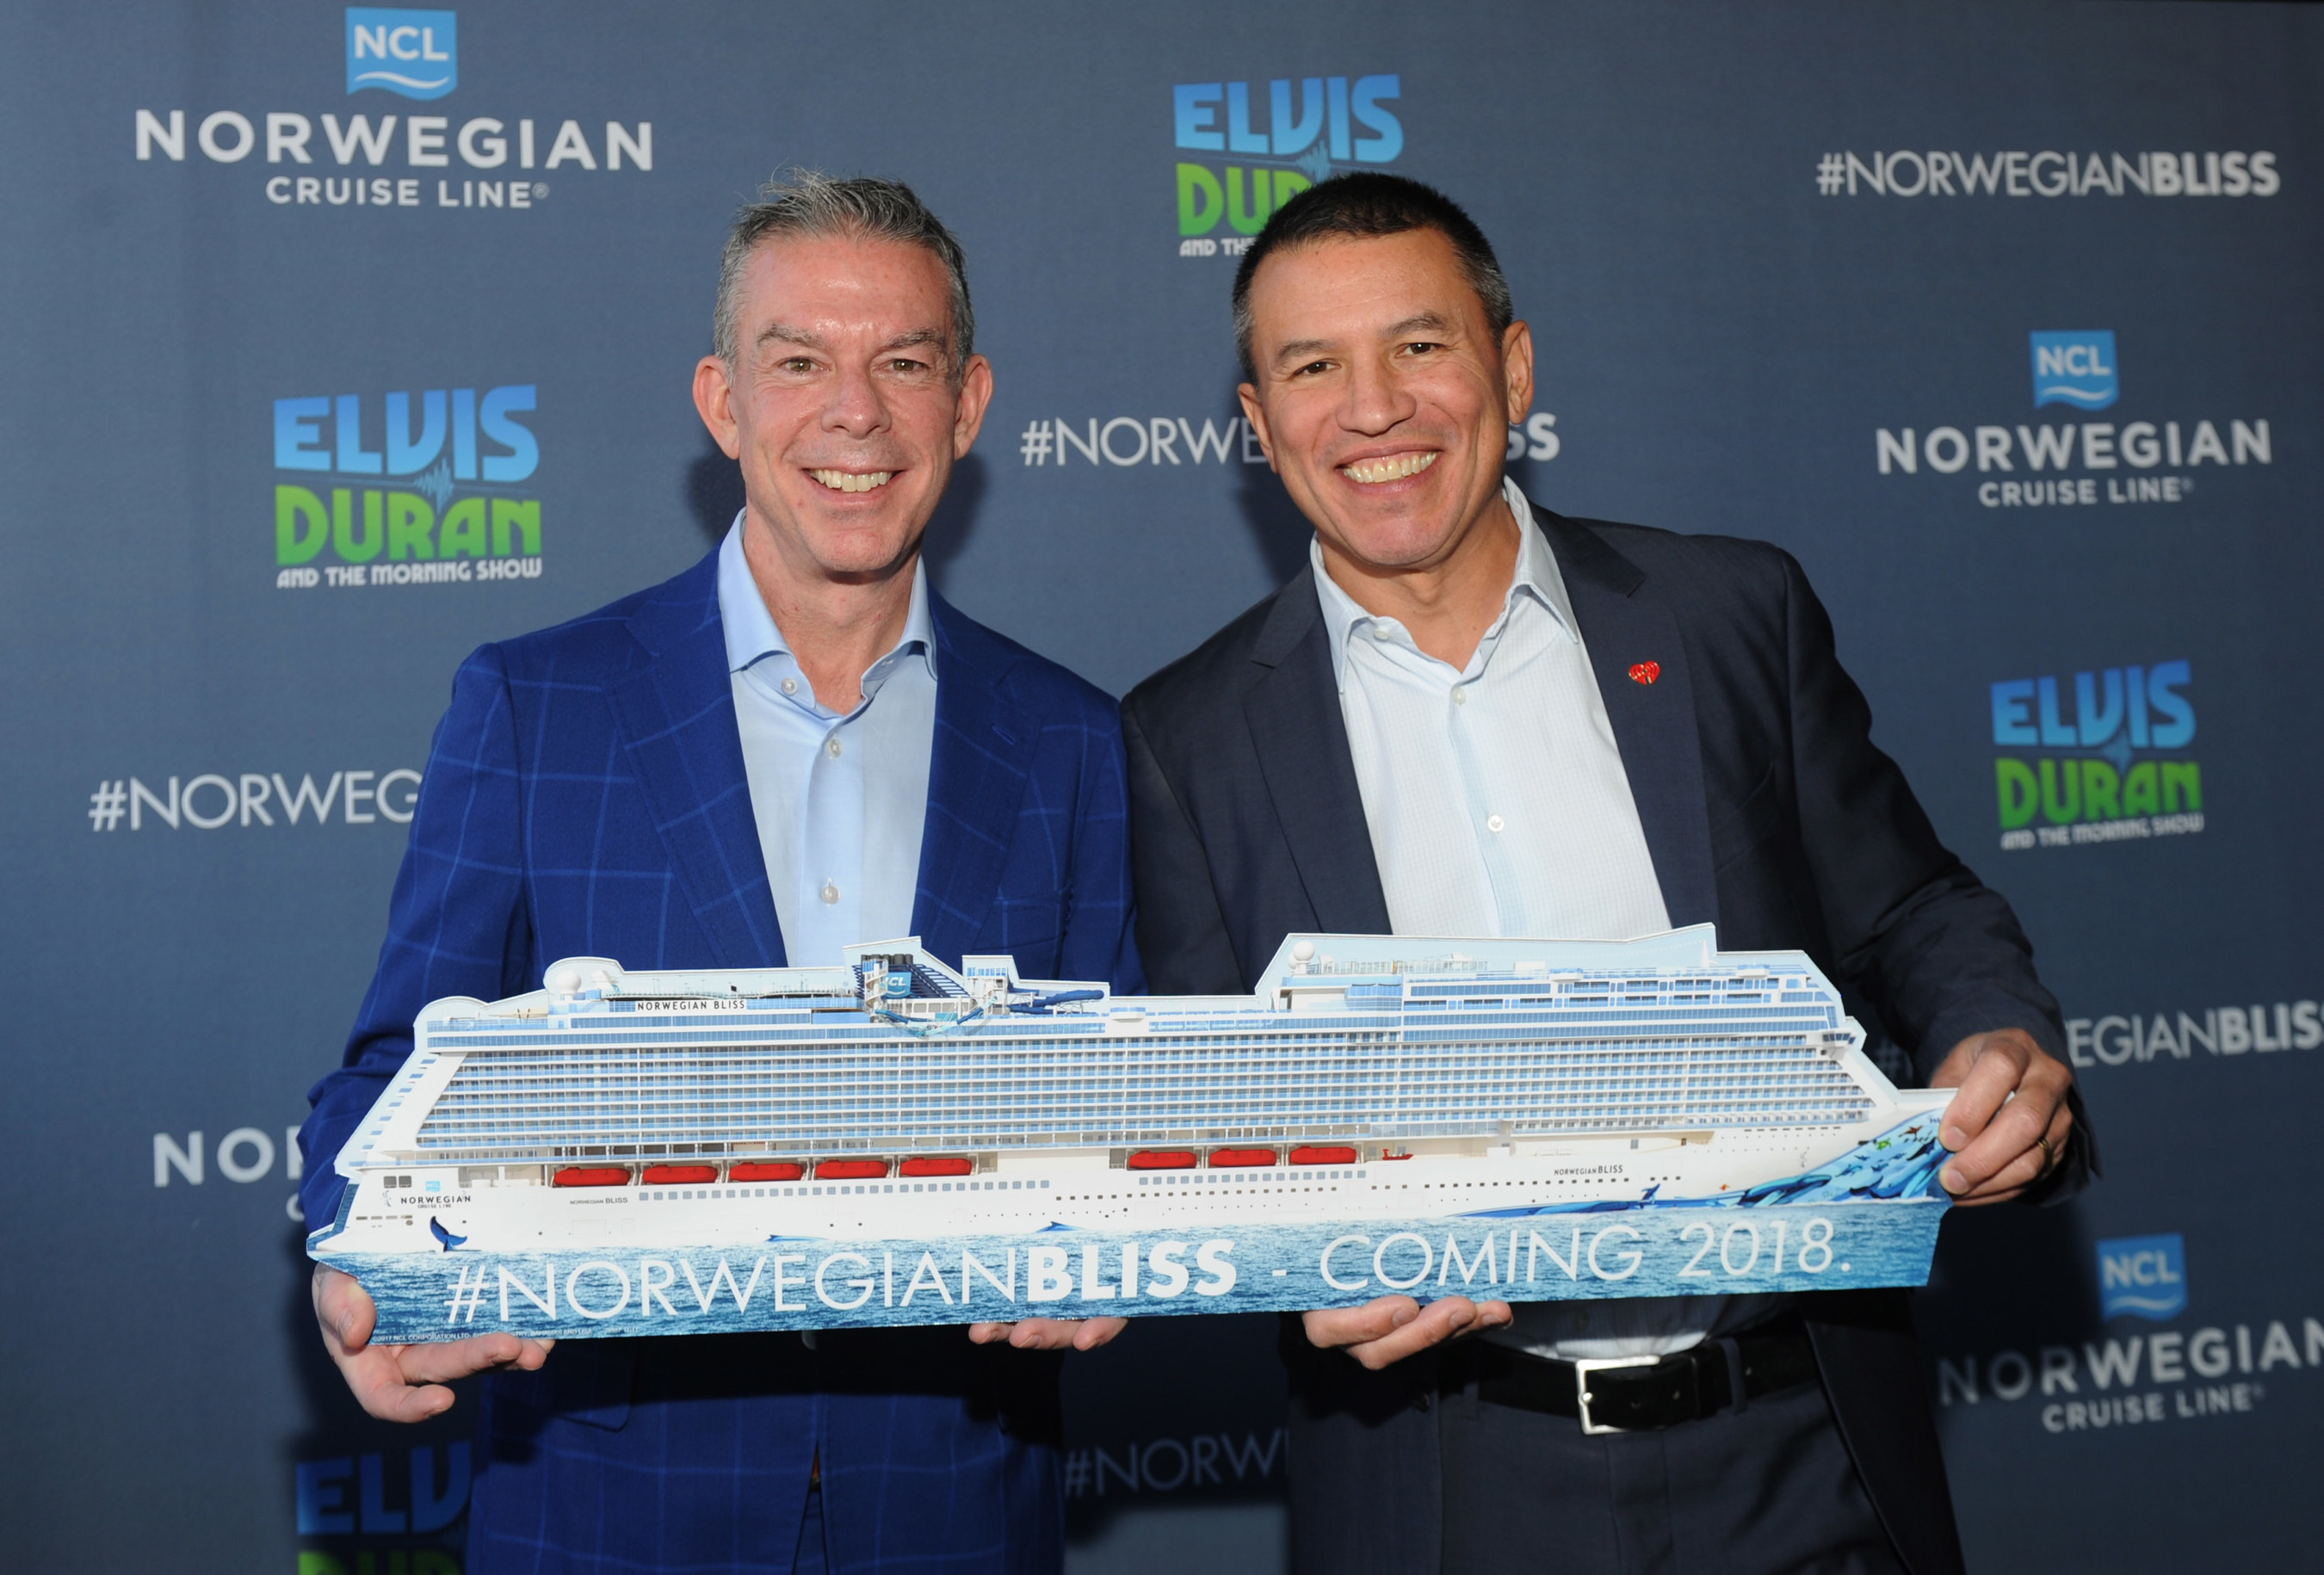 Norwegian Cruise Line Names Top On Air Personality Elvis